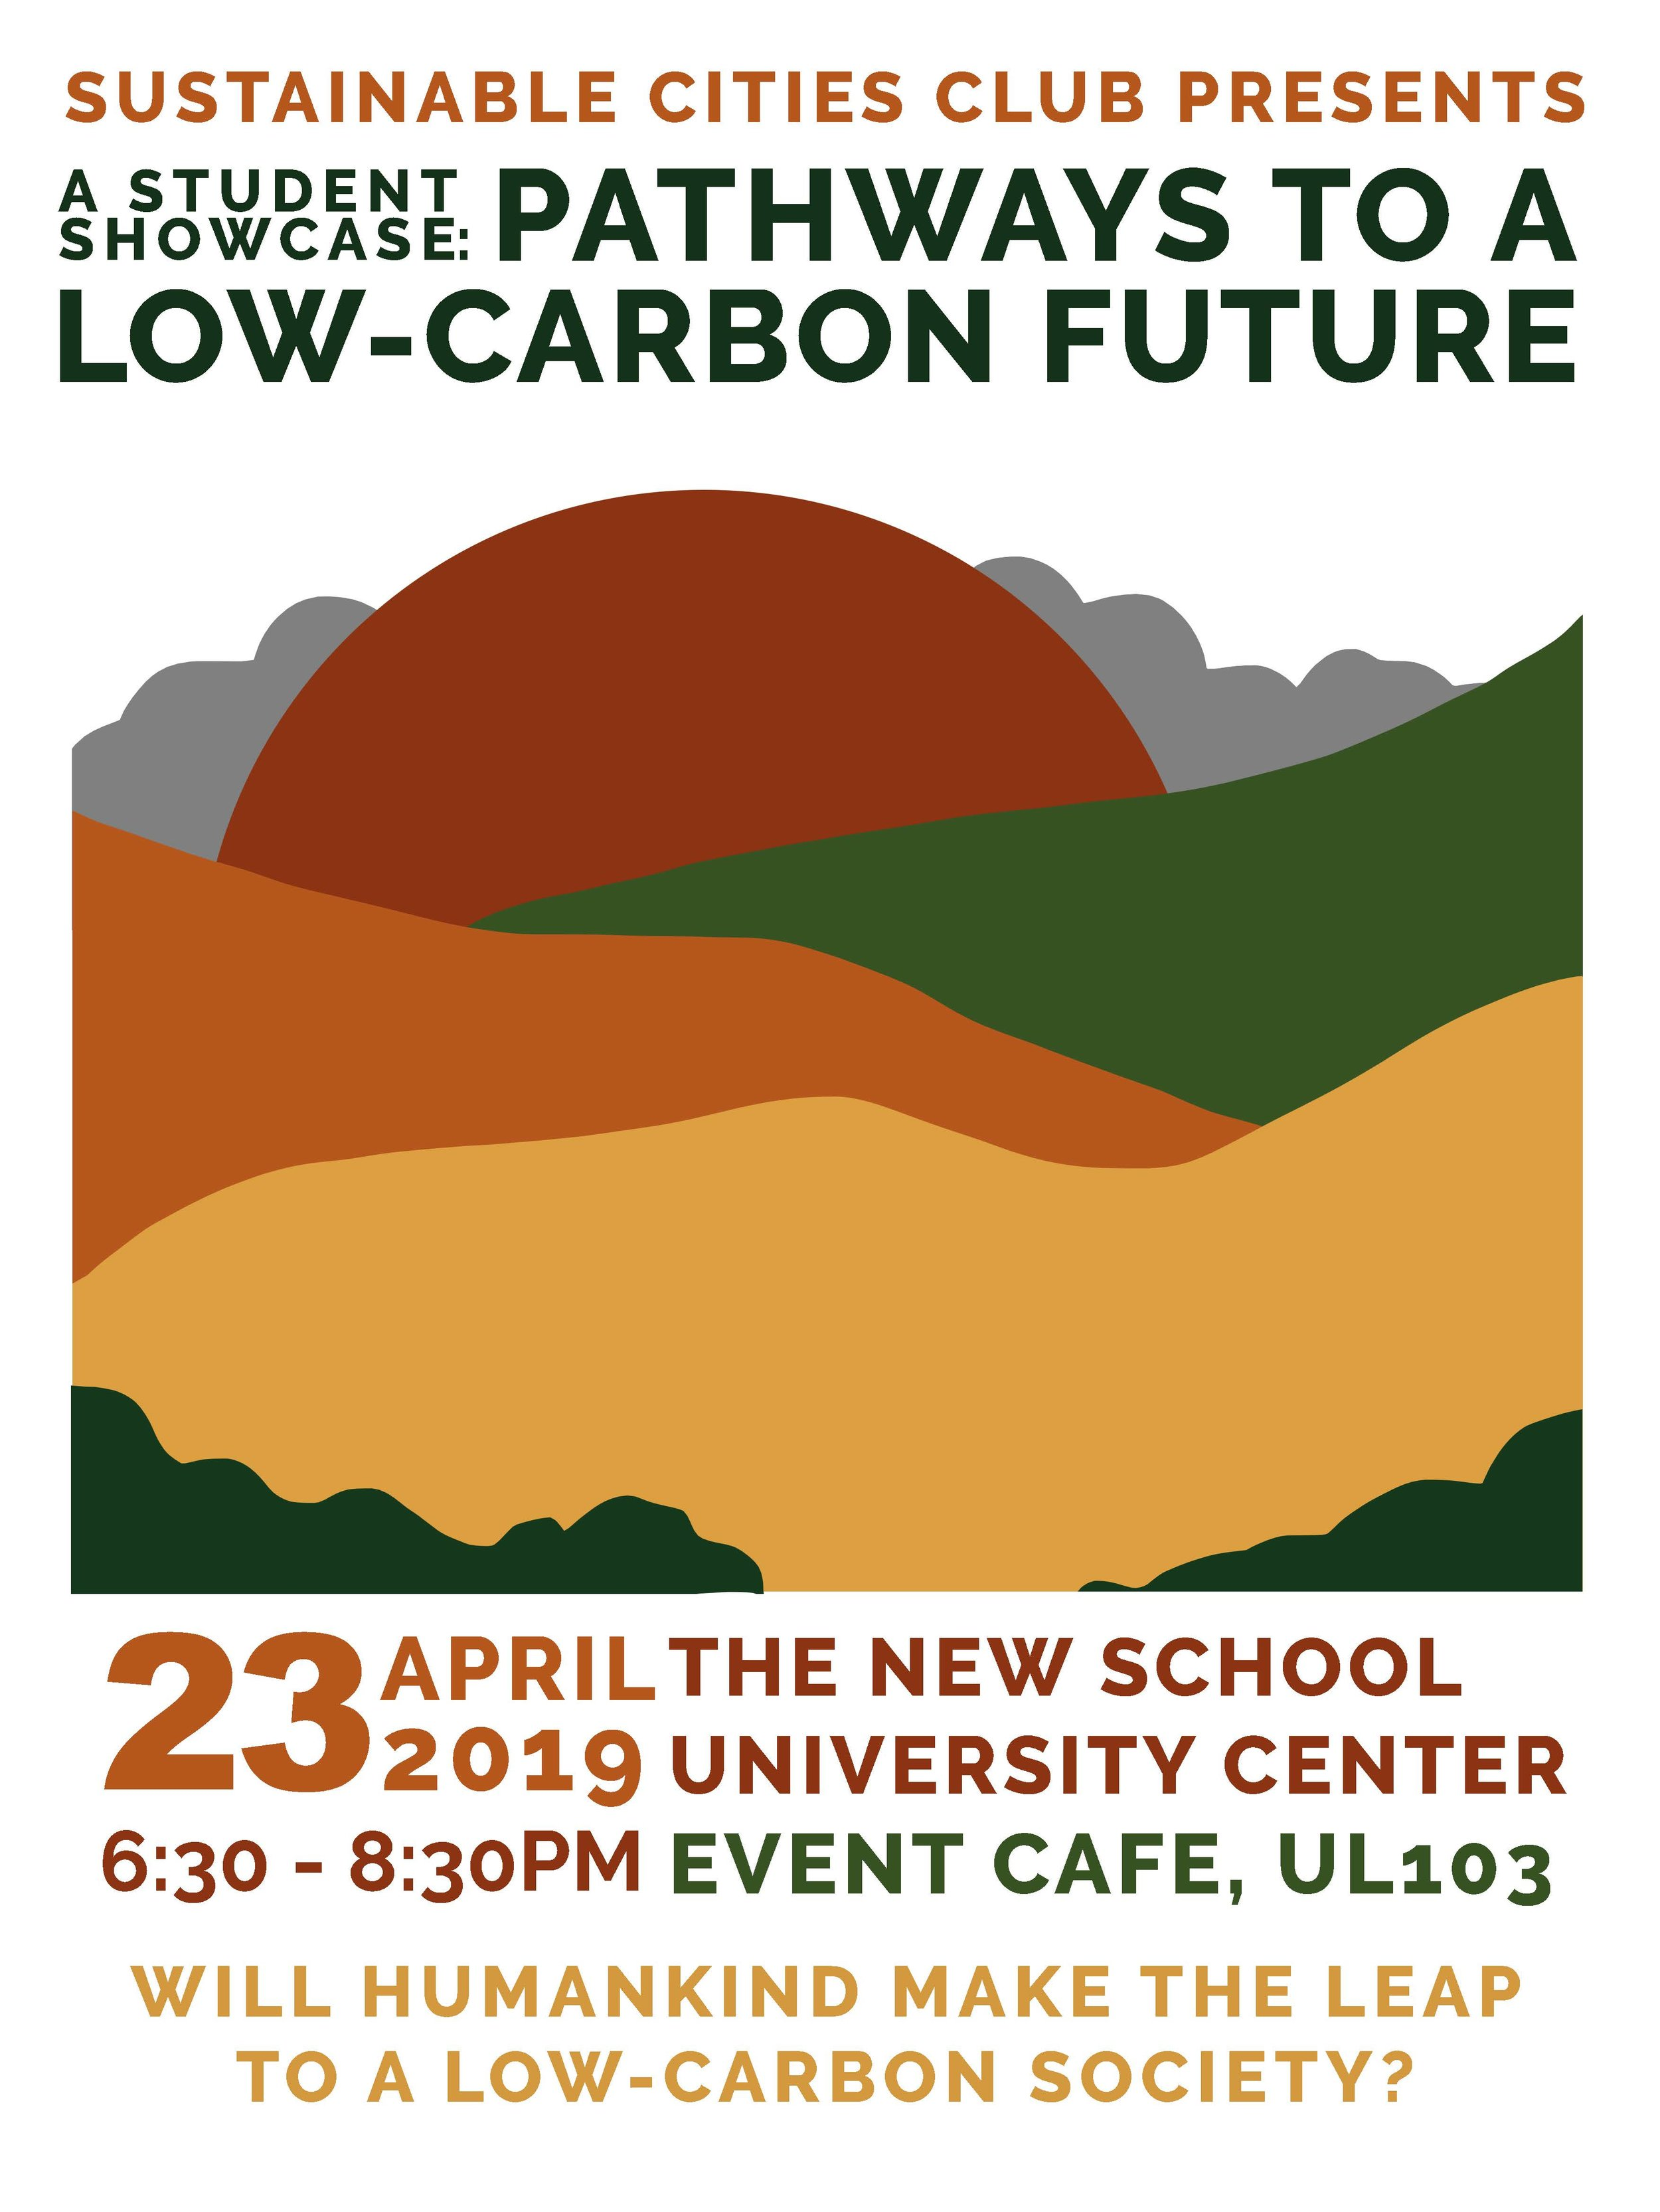 Pathways to a Low-Carbon Future A Student Showcase - An overview of the challenge at hand and a showcase of promising pathways to decarbonization.